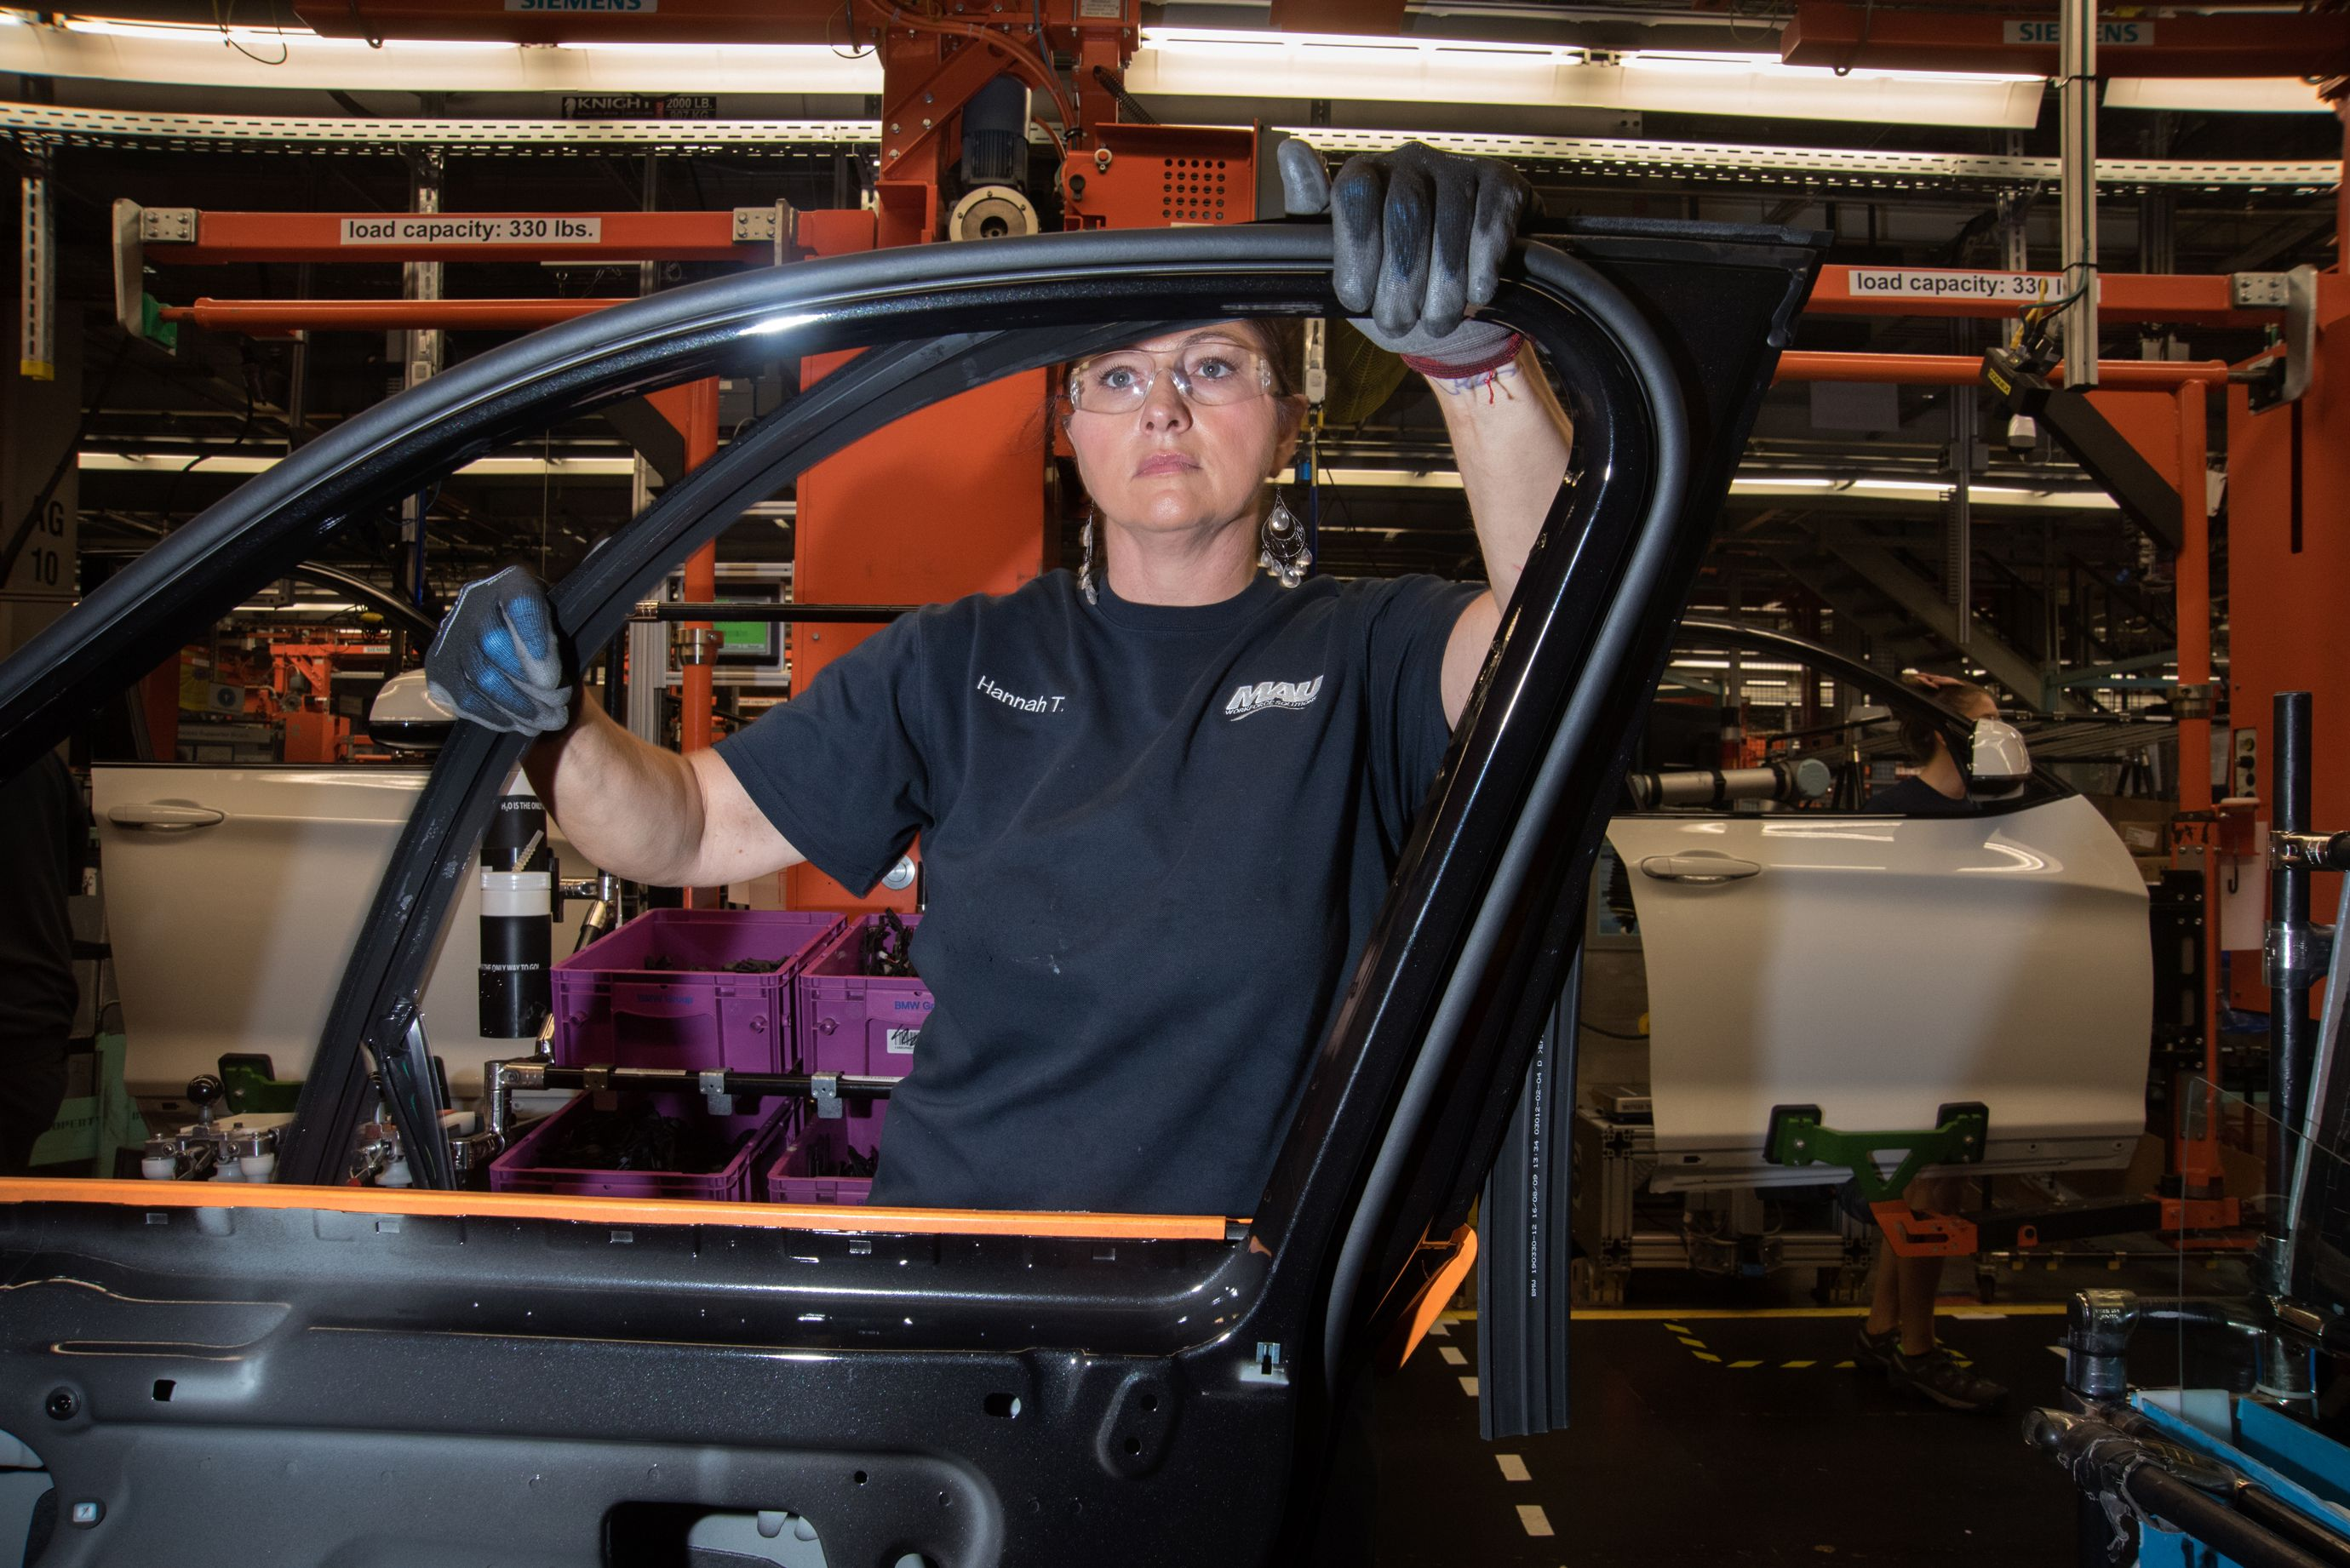 An employee of MAU, a firm that provides contract workers to BMW, helps to assemble a door. (5 of 7)